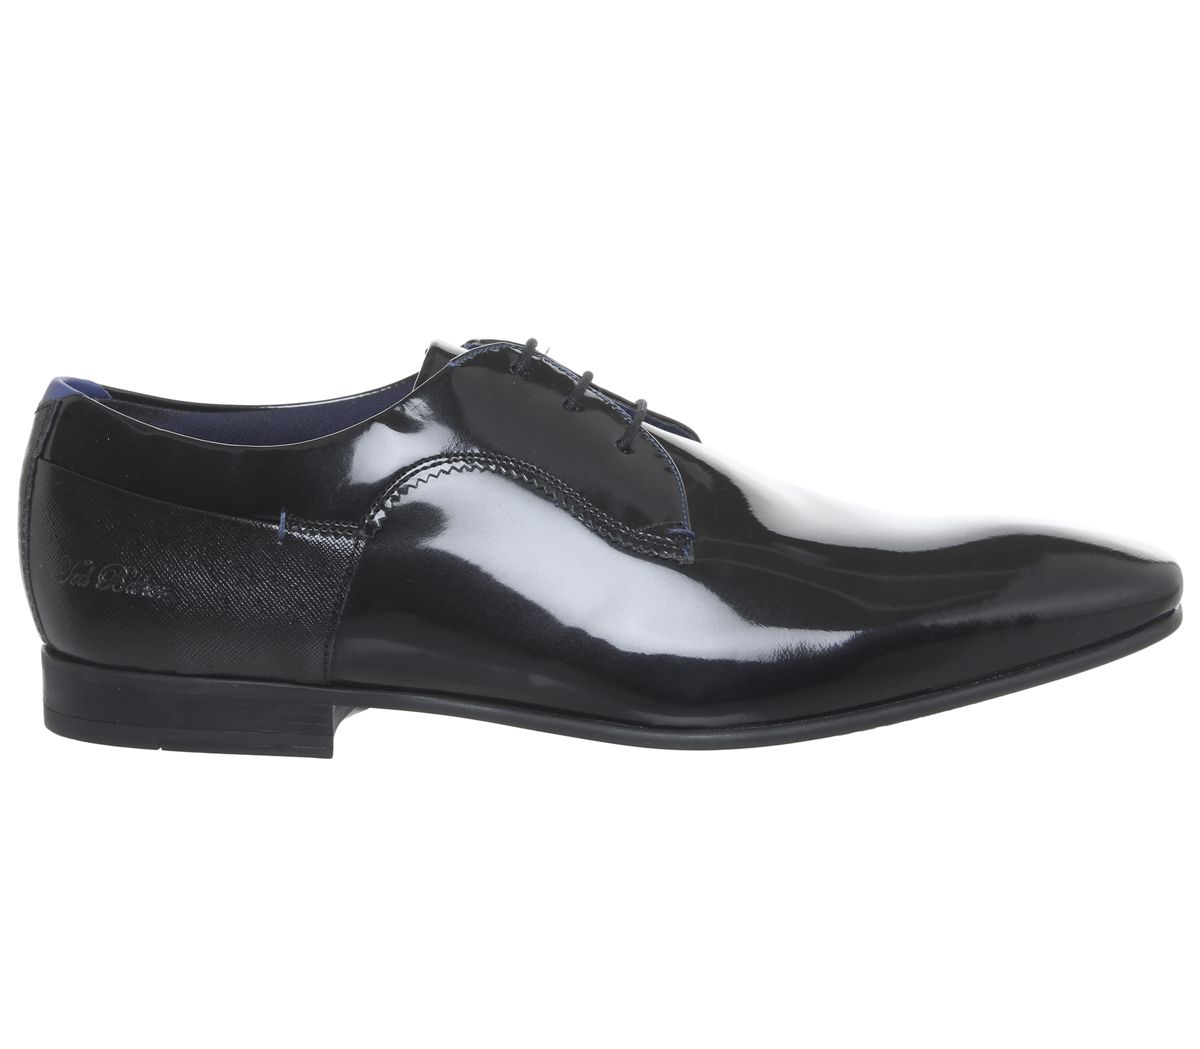 551397a91e05 Ted Baker Tifipp Shoes Black Patent - Smart